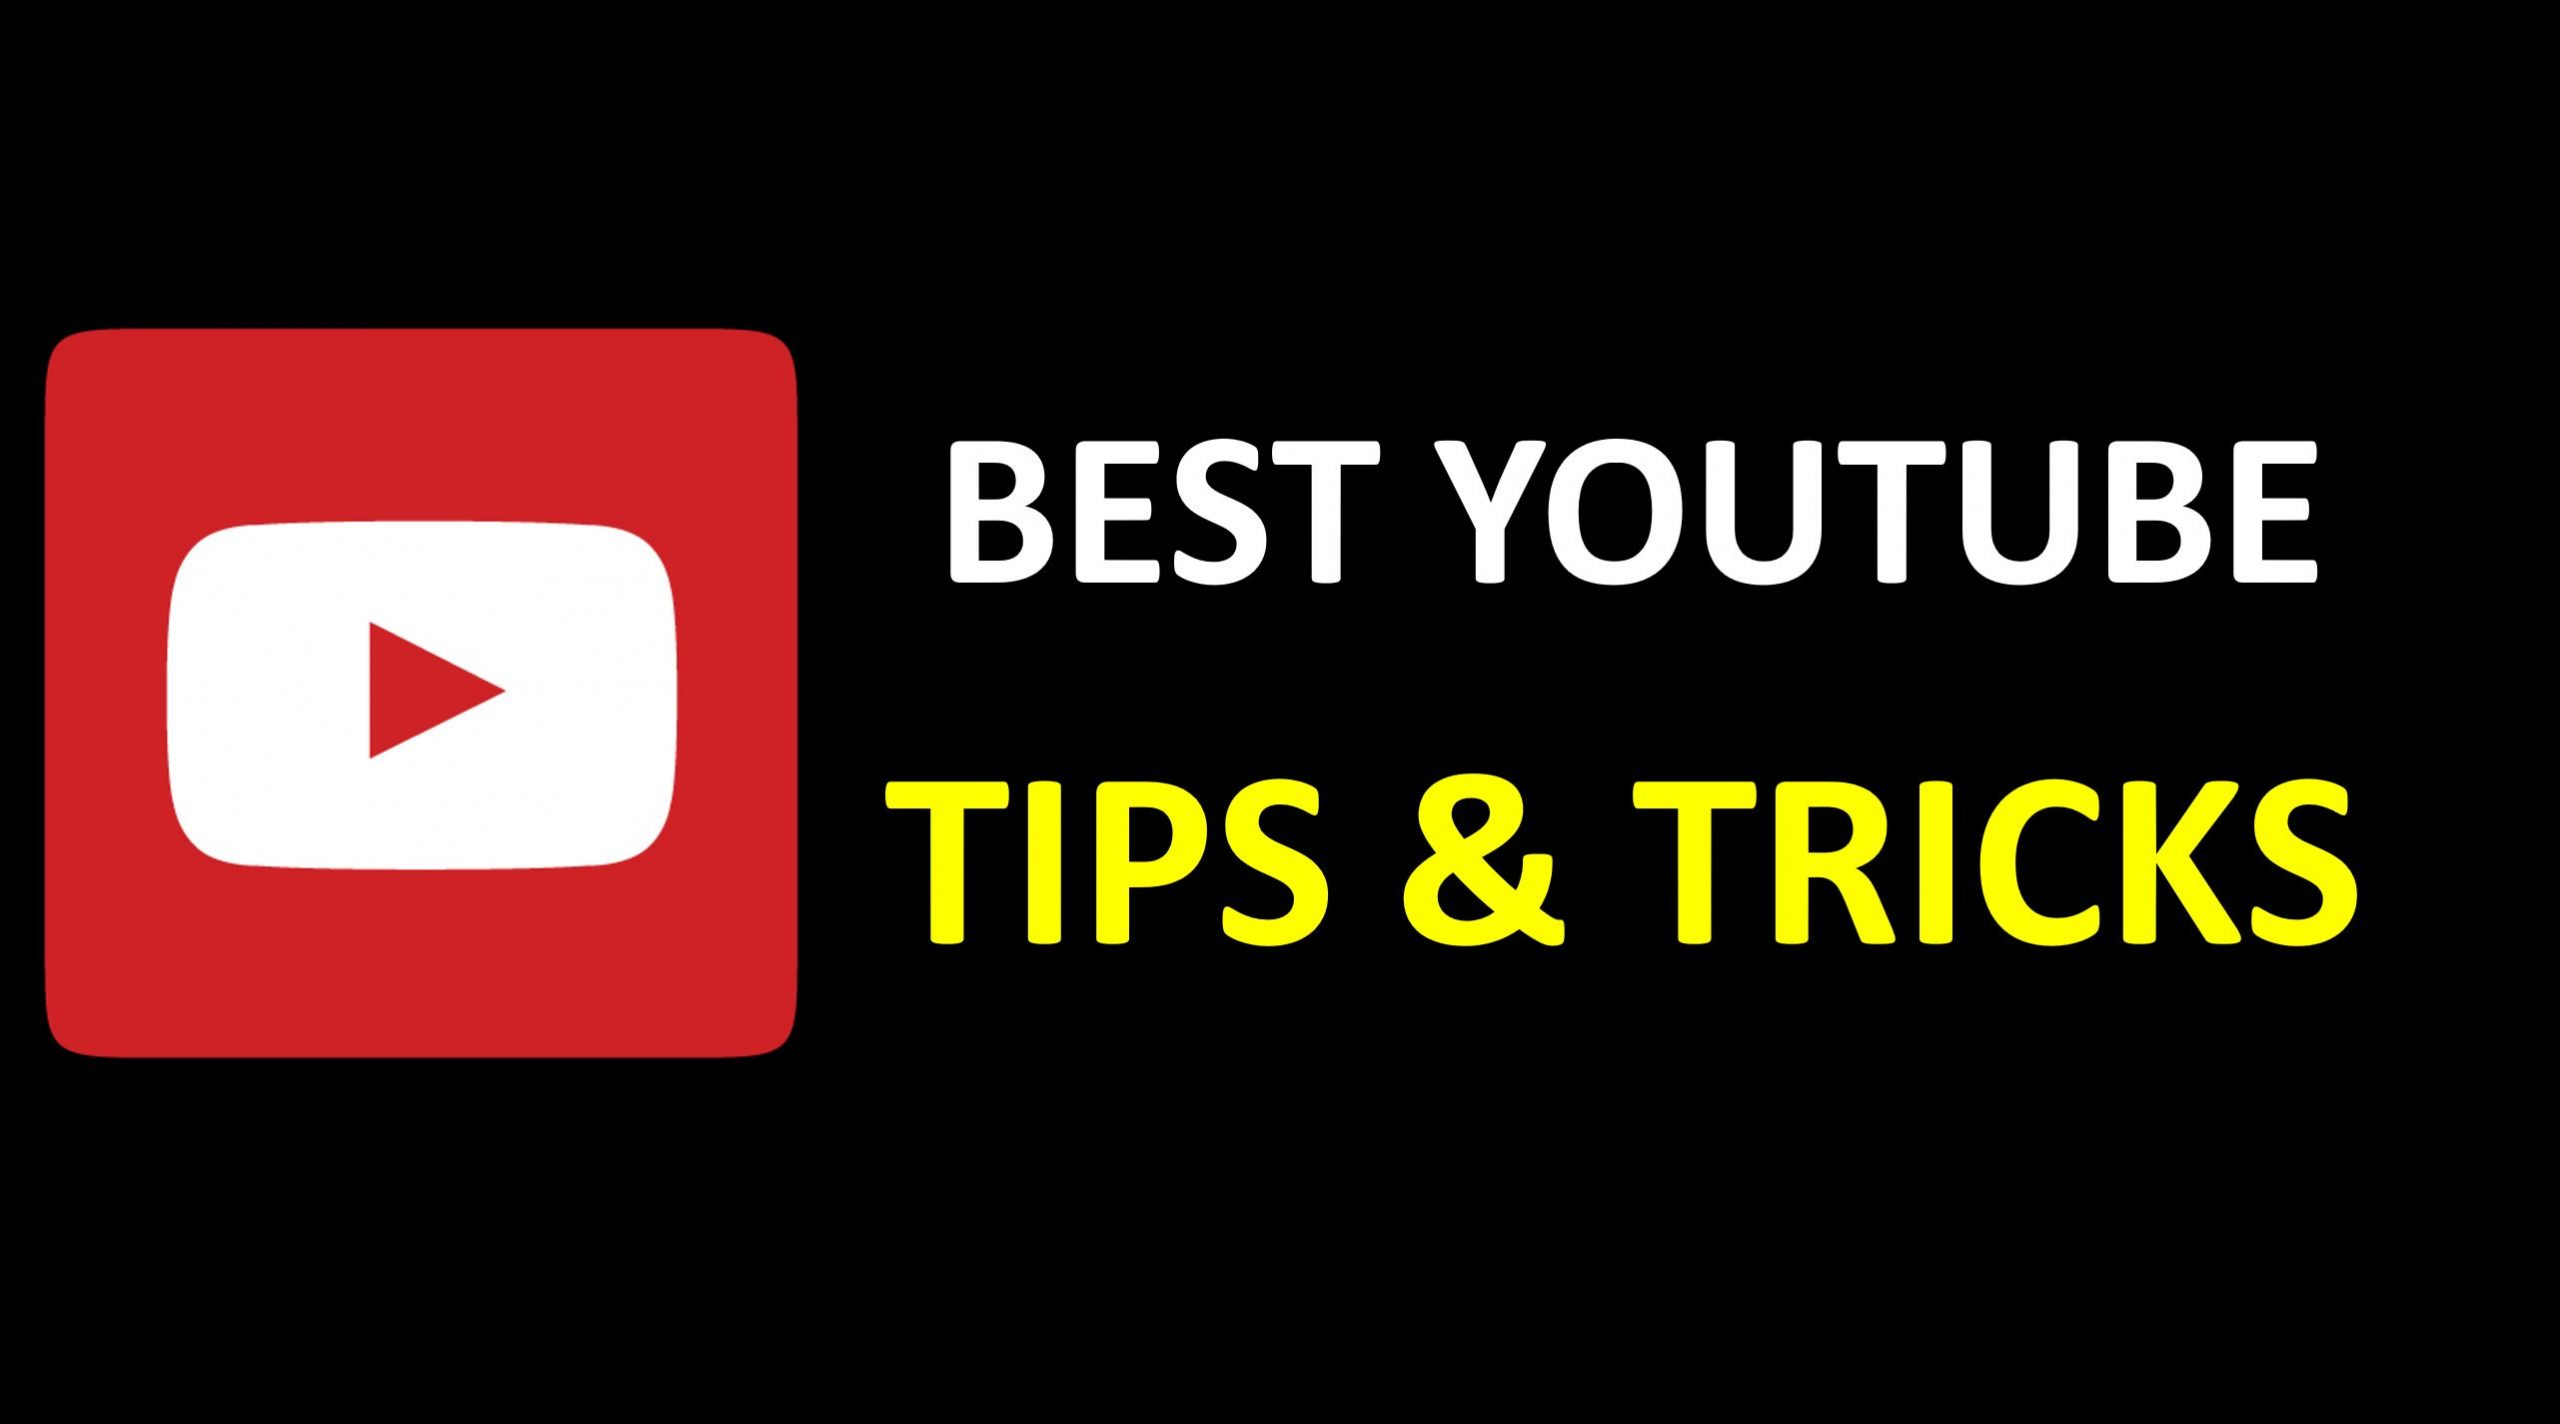 Best Youtube Tips and Tricks